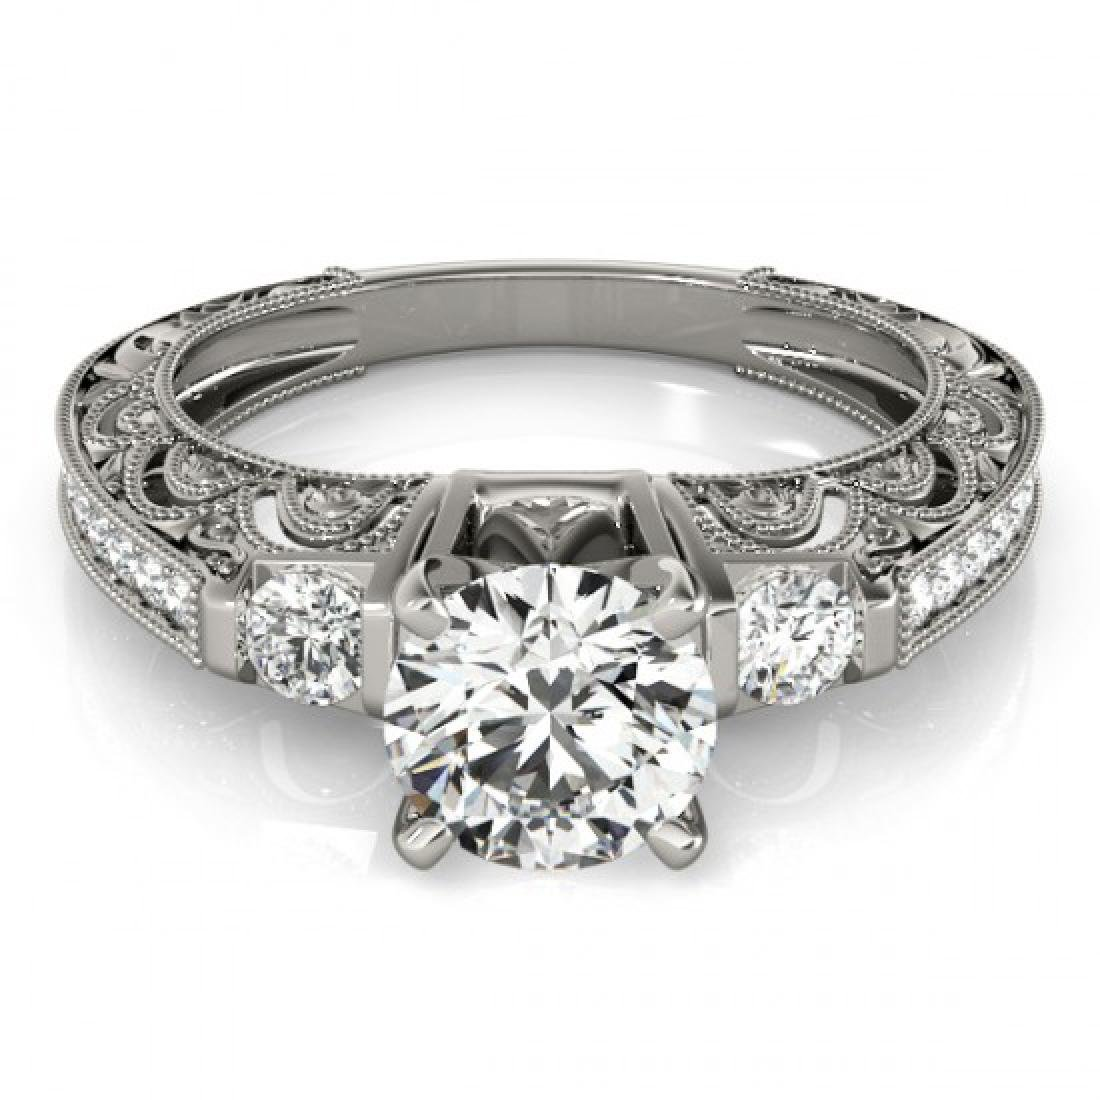 0.91 CTW Certified VS/SI Diamond Solitaire Antique Ring